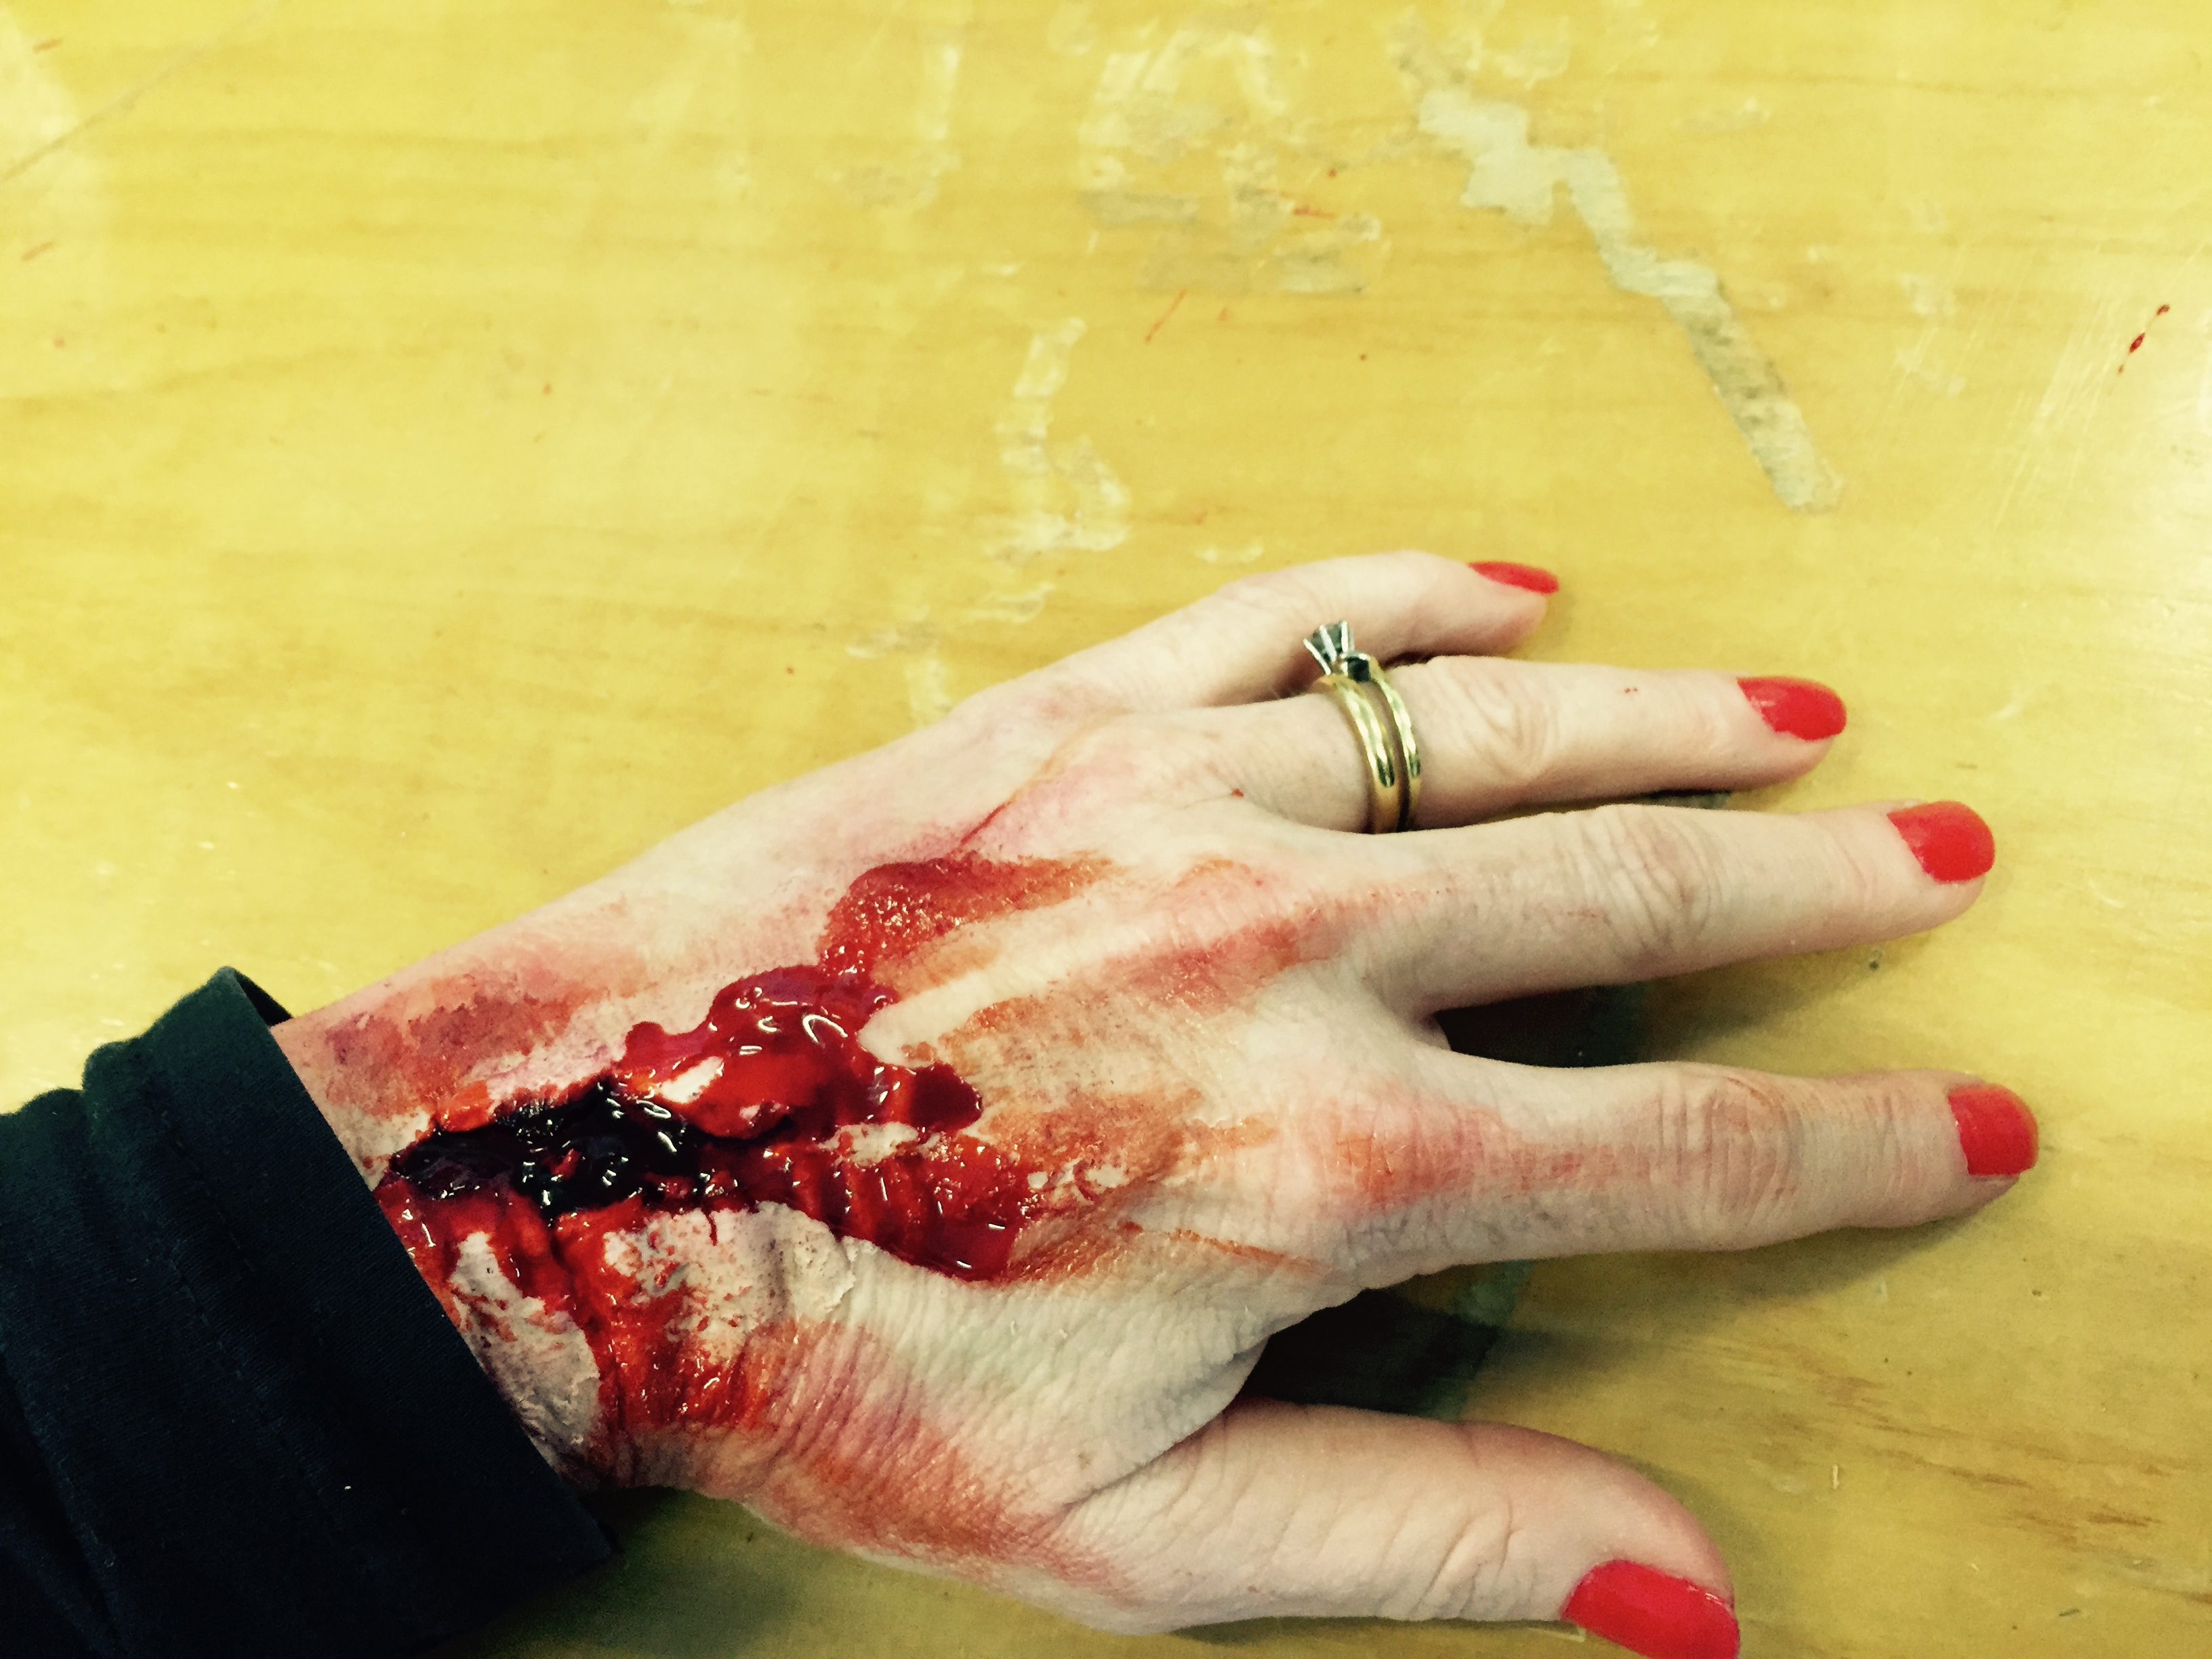 SFX Wounds